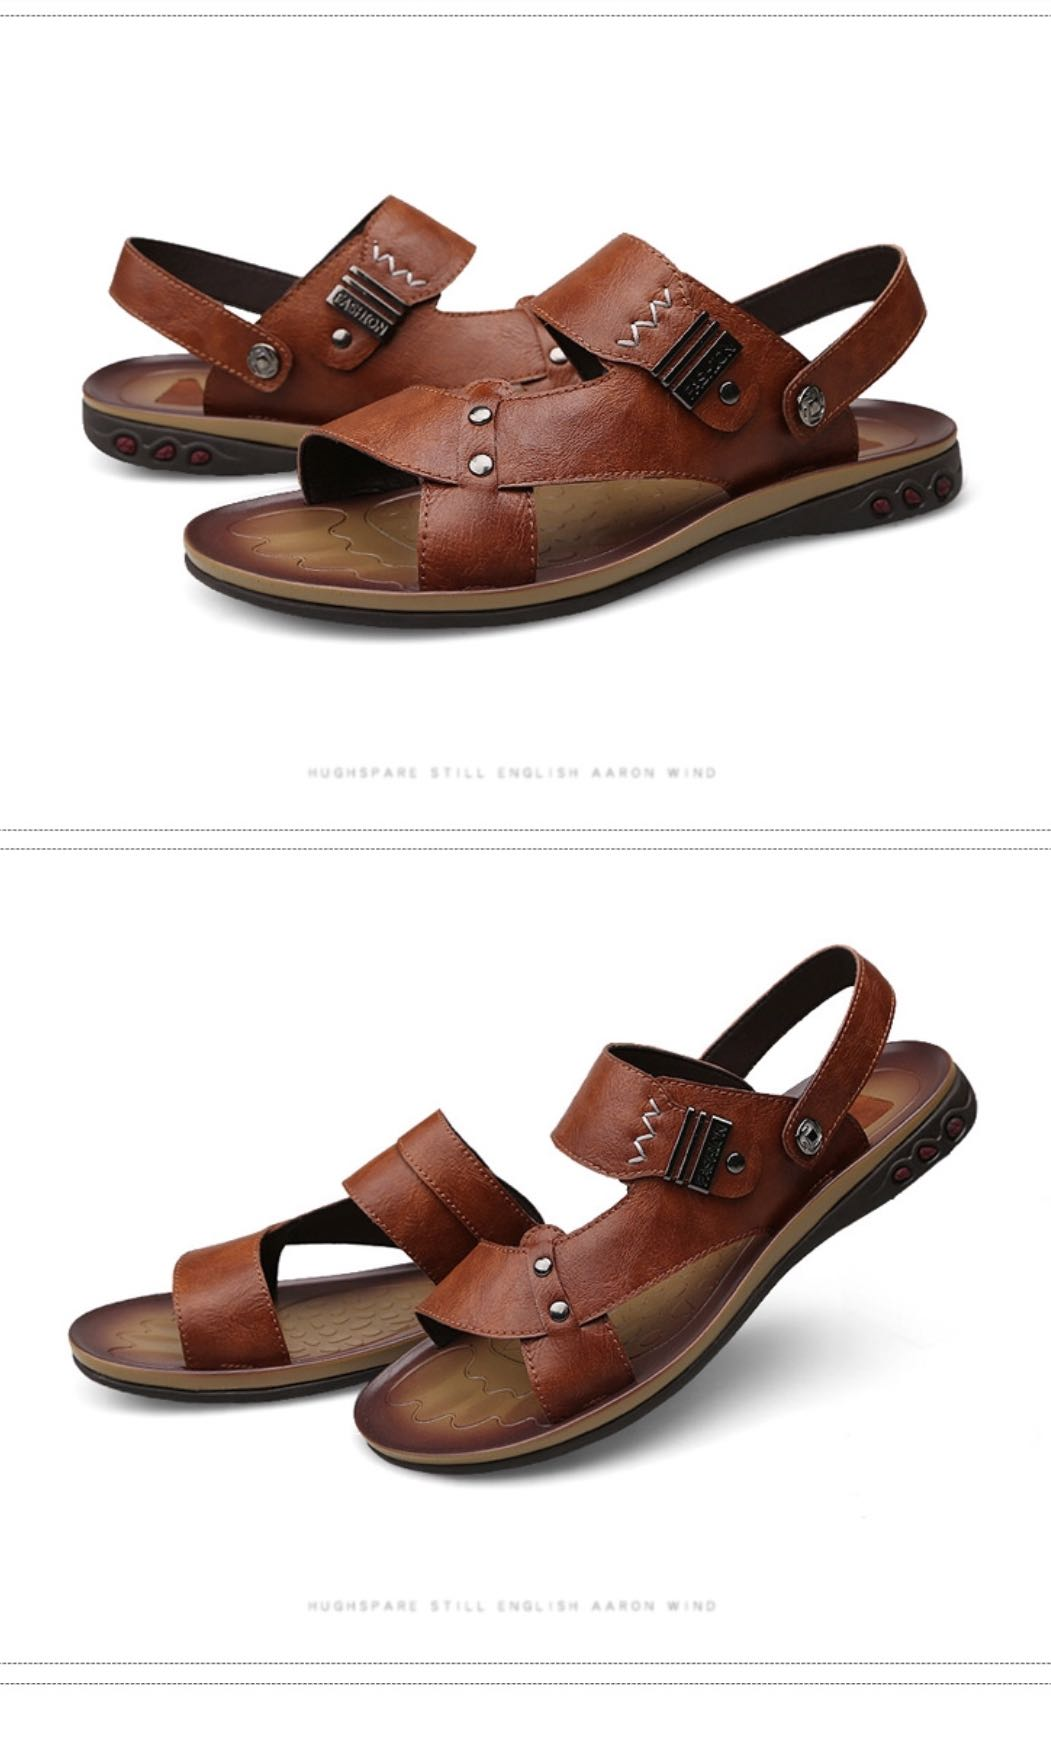 dde73cc3cf02 Men Leather Sandals Slippers